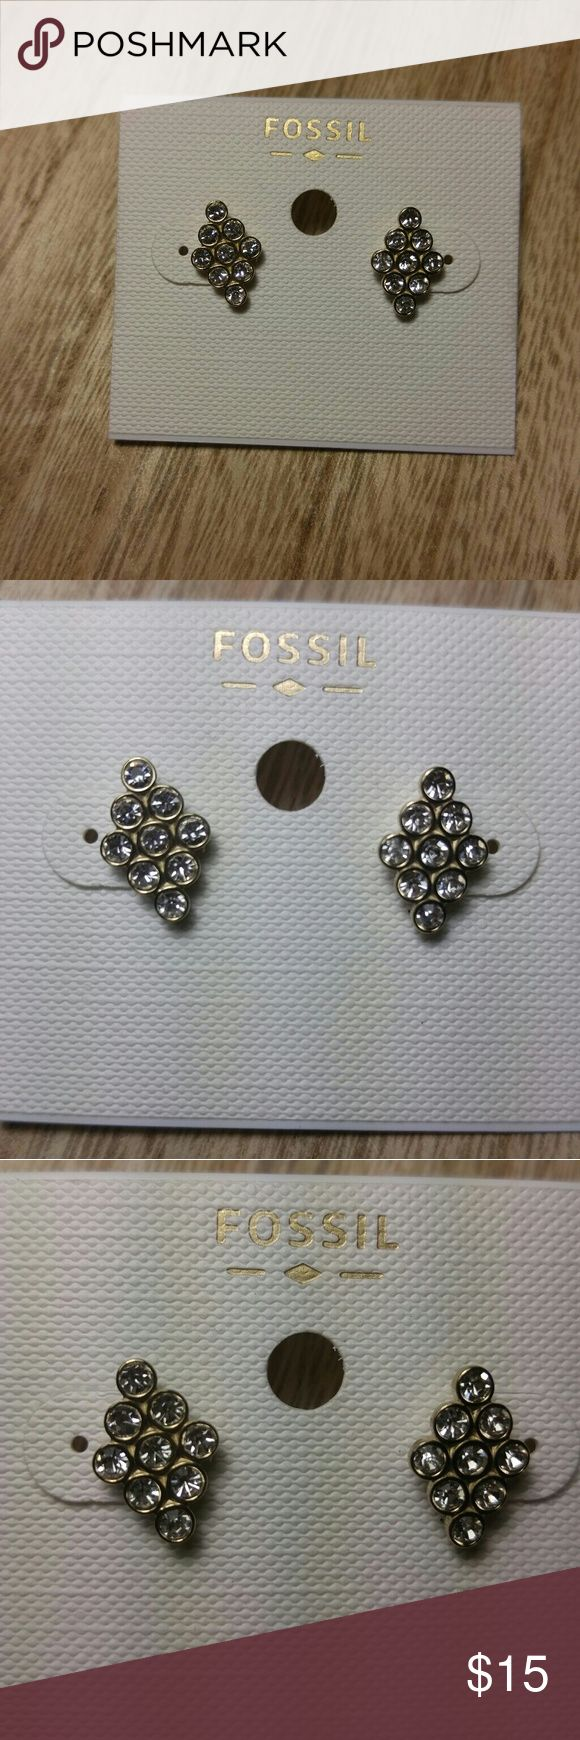 Fossil Earrings Gold stainless steel fossil earring studs with cubic zirconia Fossil Jewelry Earrings